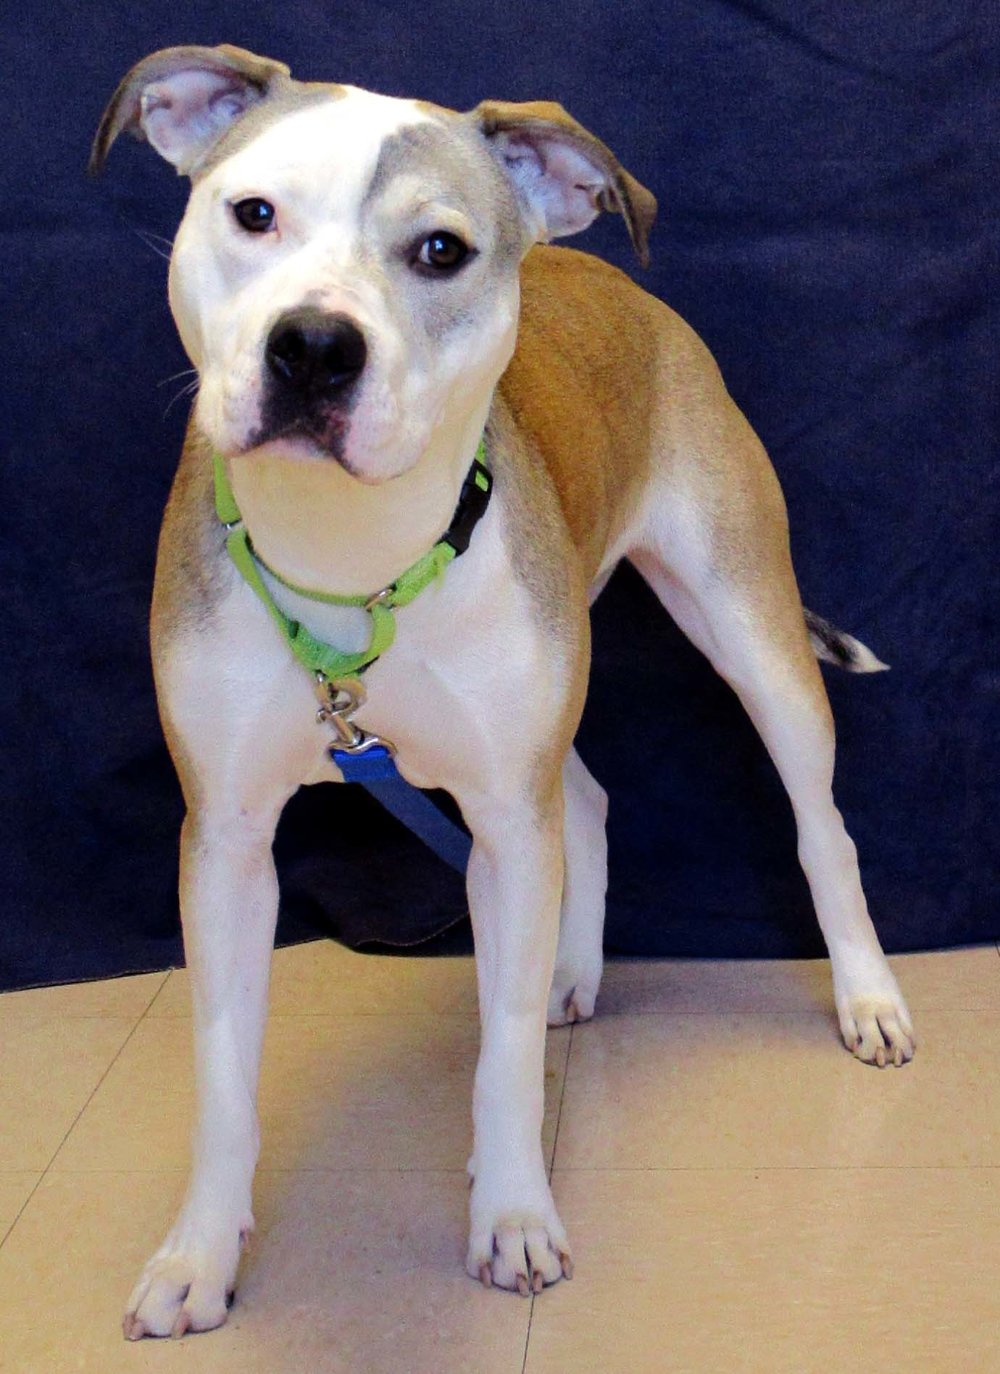 Riley is an 11 month old American Pitbull Terrier. HAWS is recommending children 10 and older due to her strength. She would do best being the only pet in the house. Riley is very sweet and likes to think she is a lap dog. When she settled down she was a heavy leaner for petting.